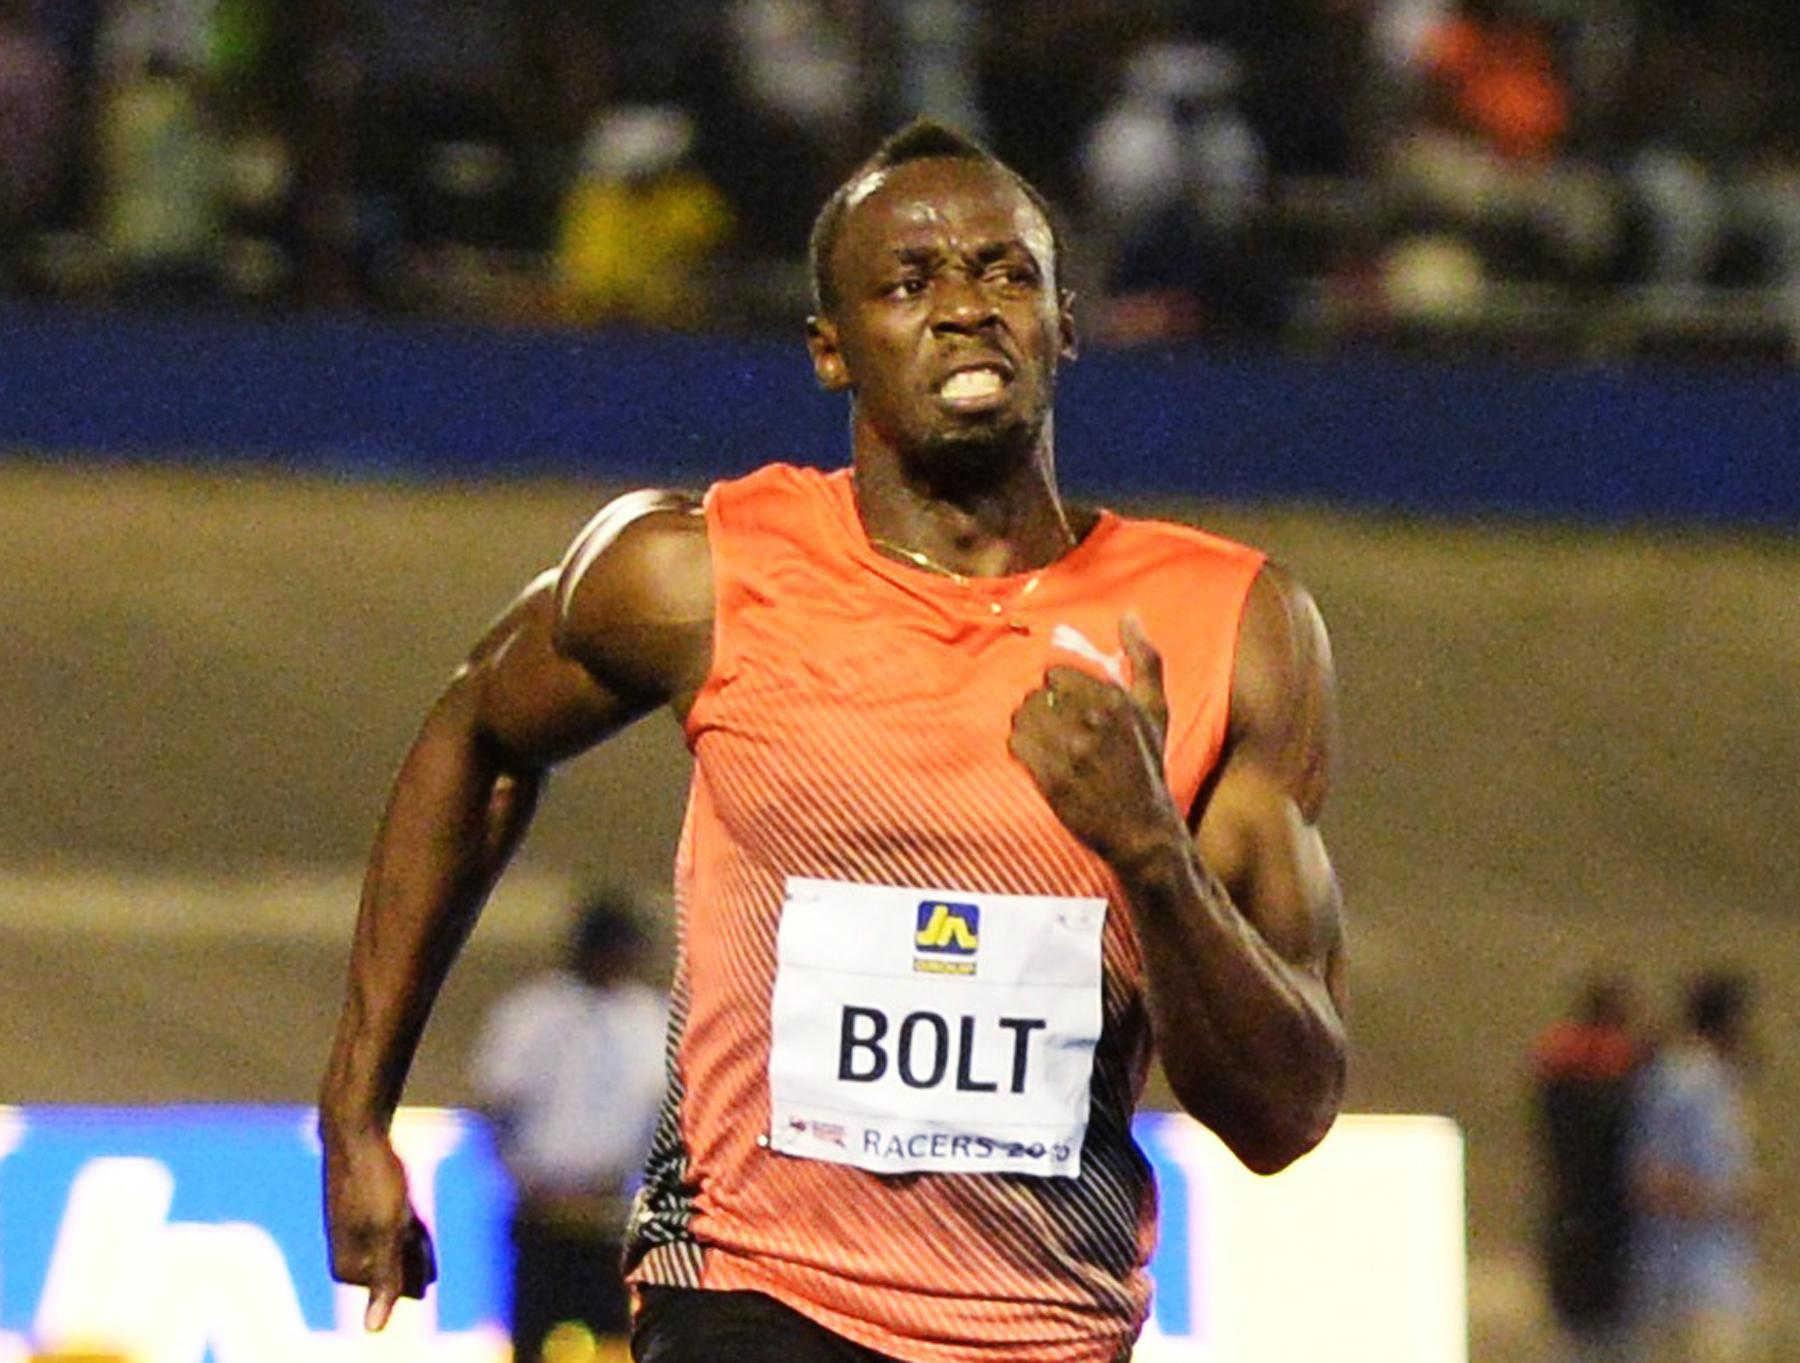 Usain Bolt Of Jamaica Has Won Six Gold Medals In The Past Two Olympics